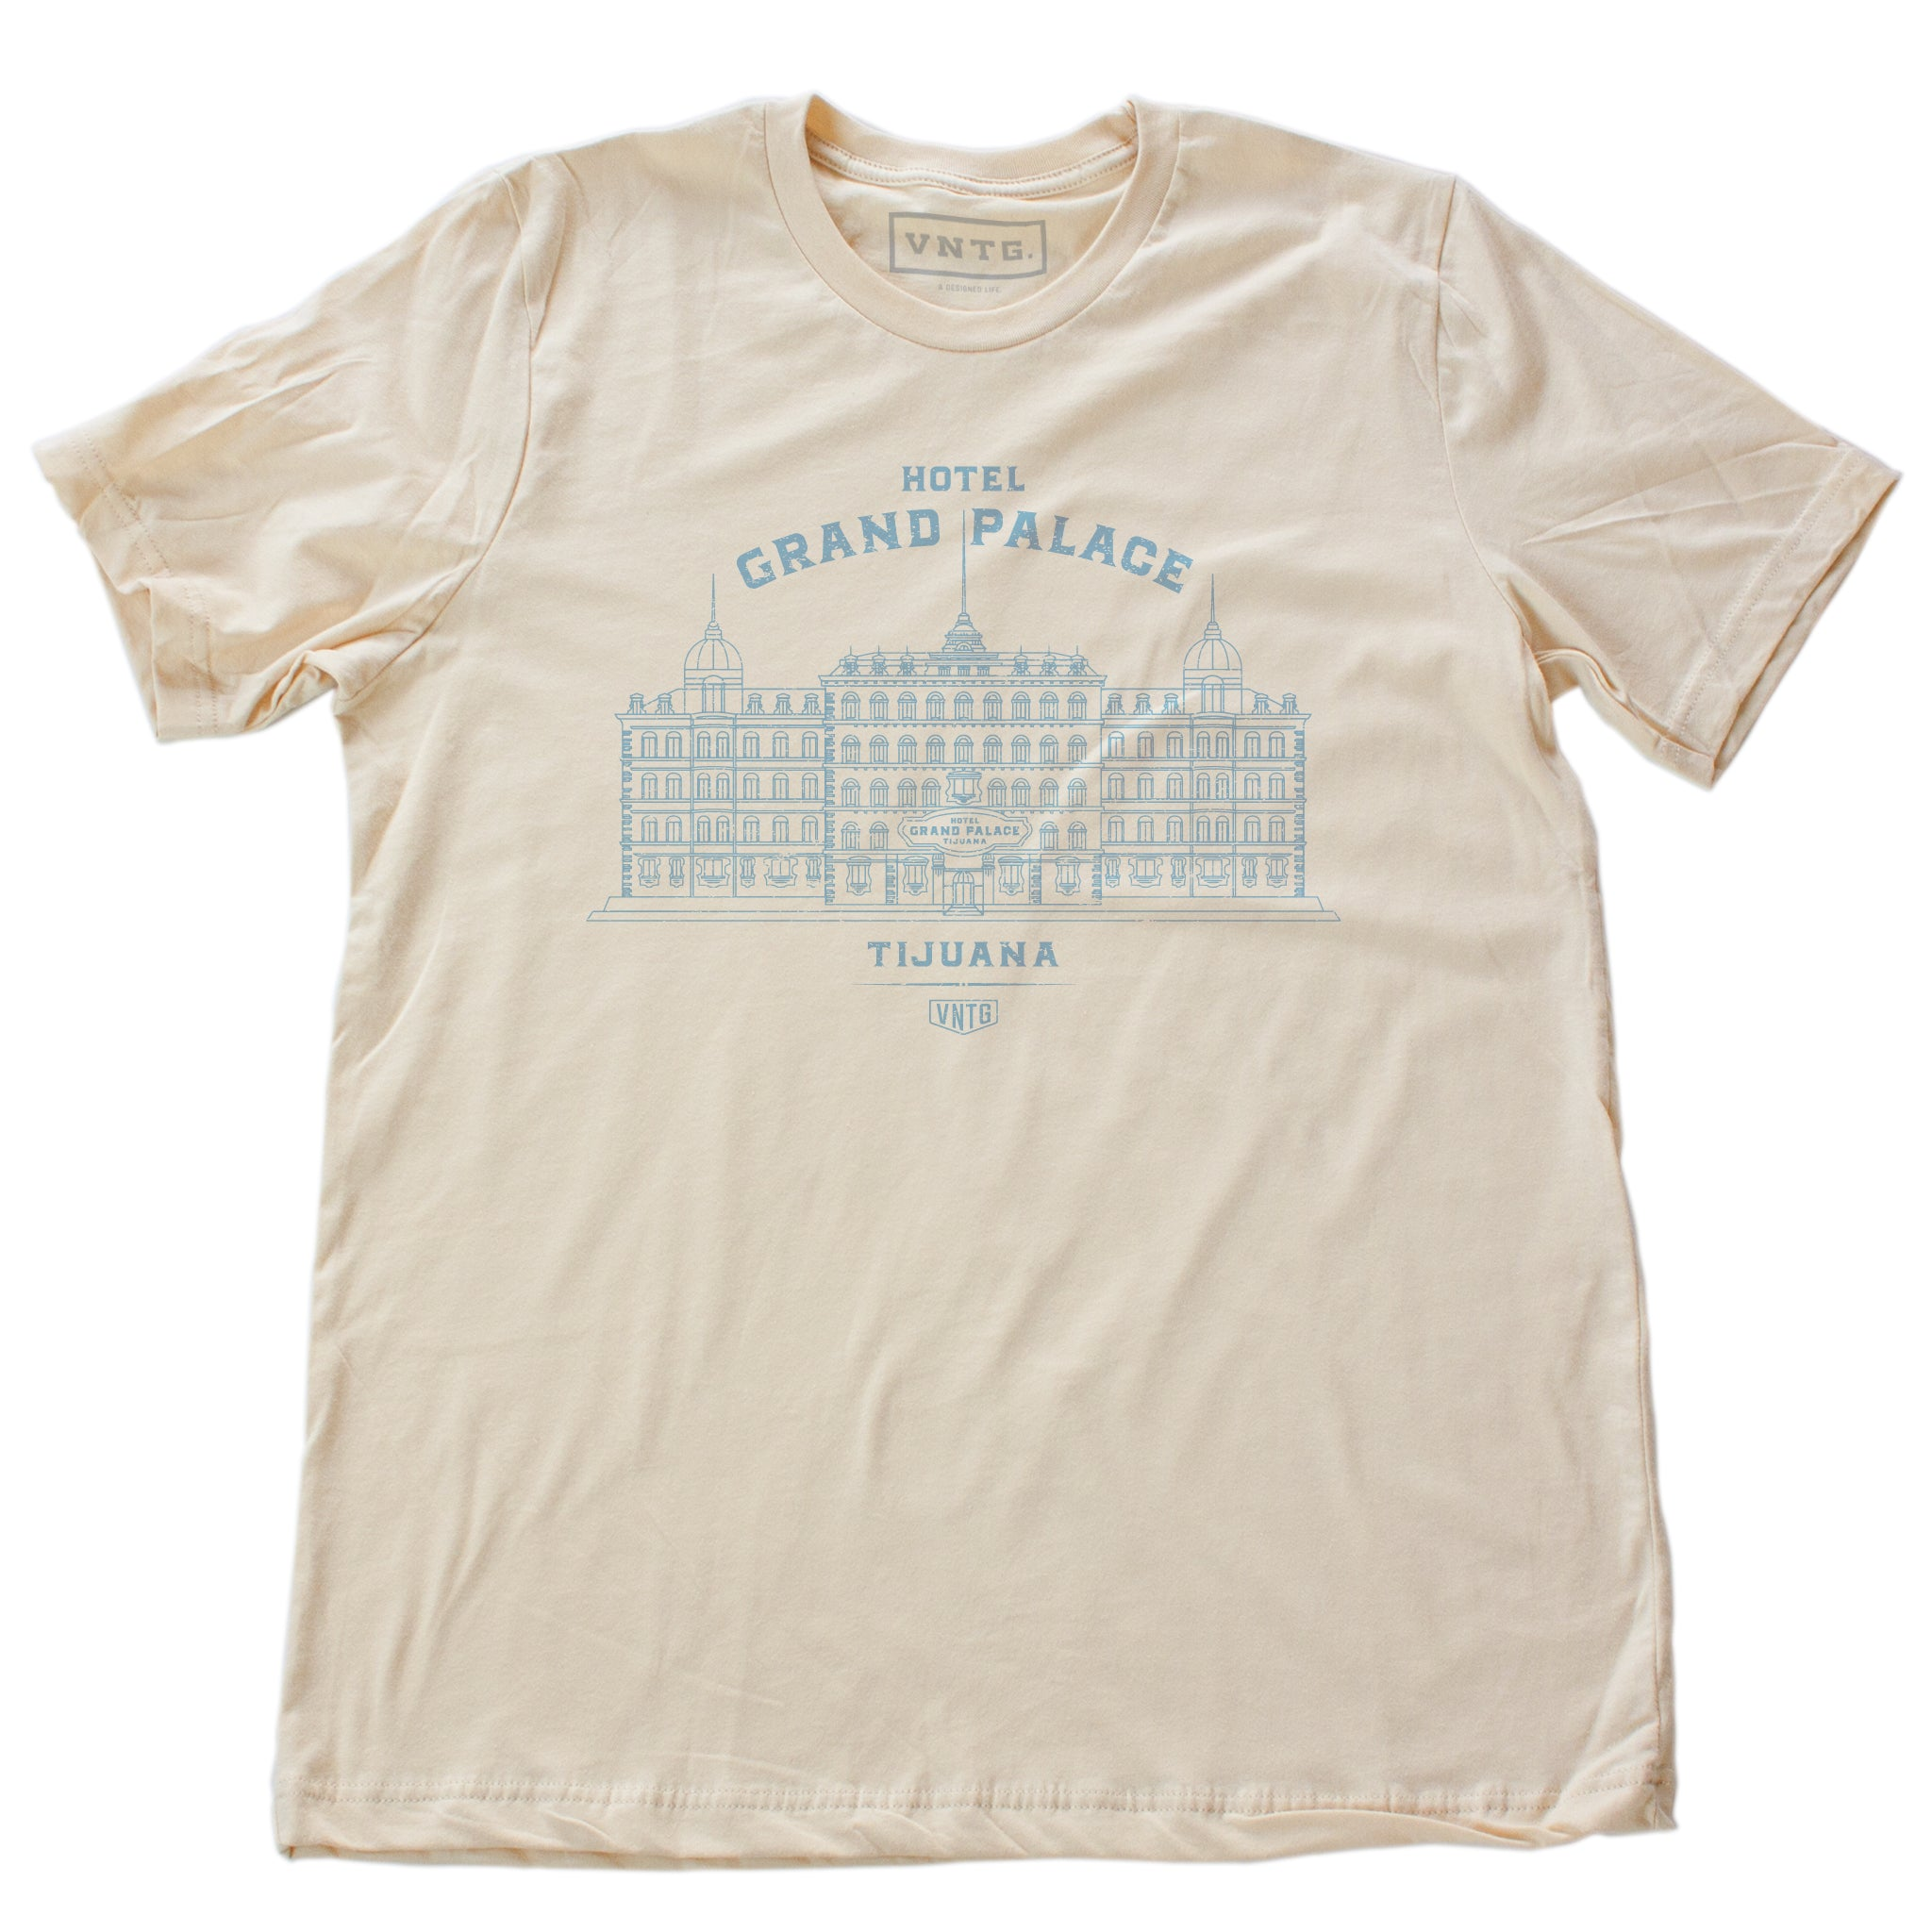 A vintage-inspired retro t-shirt in Soft Cream, promoting a fictional, sarcastic grand hotel in Tijuana, Mexico. From fashion brand VNTG, from wolfsaint.net The shirt depicts an elegant old hotel in an intricate line drawing. Inspired by the films of Wes Anderson, including The Grand Budapest Hotel.